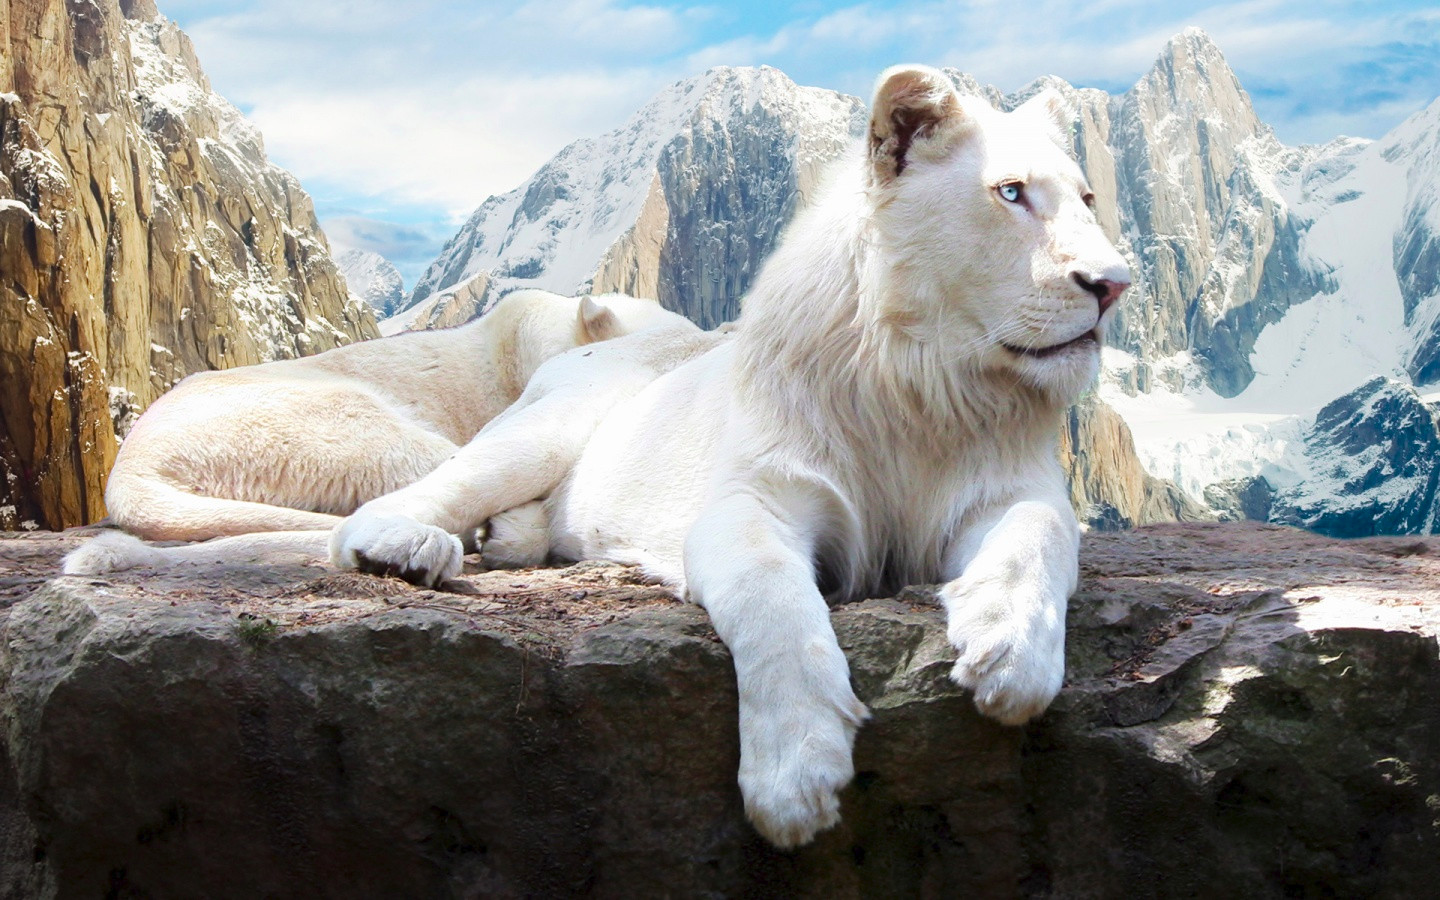 21  Animal Backgrounds  Wallpapers  Images  Pictures   Design Trends     Snow Lion Animal Wallpaper